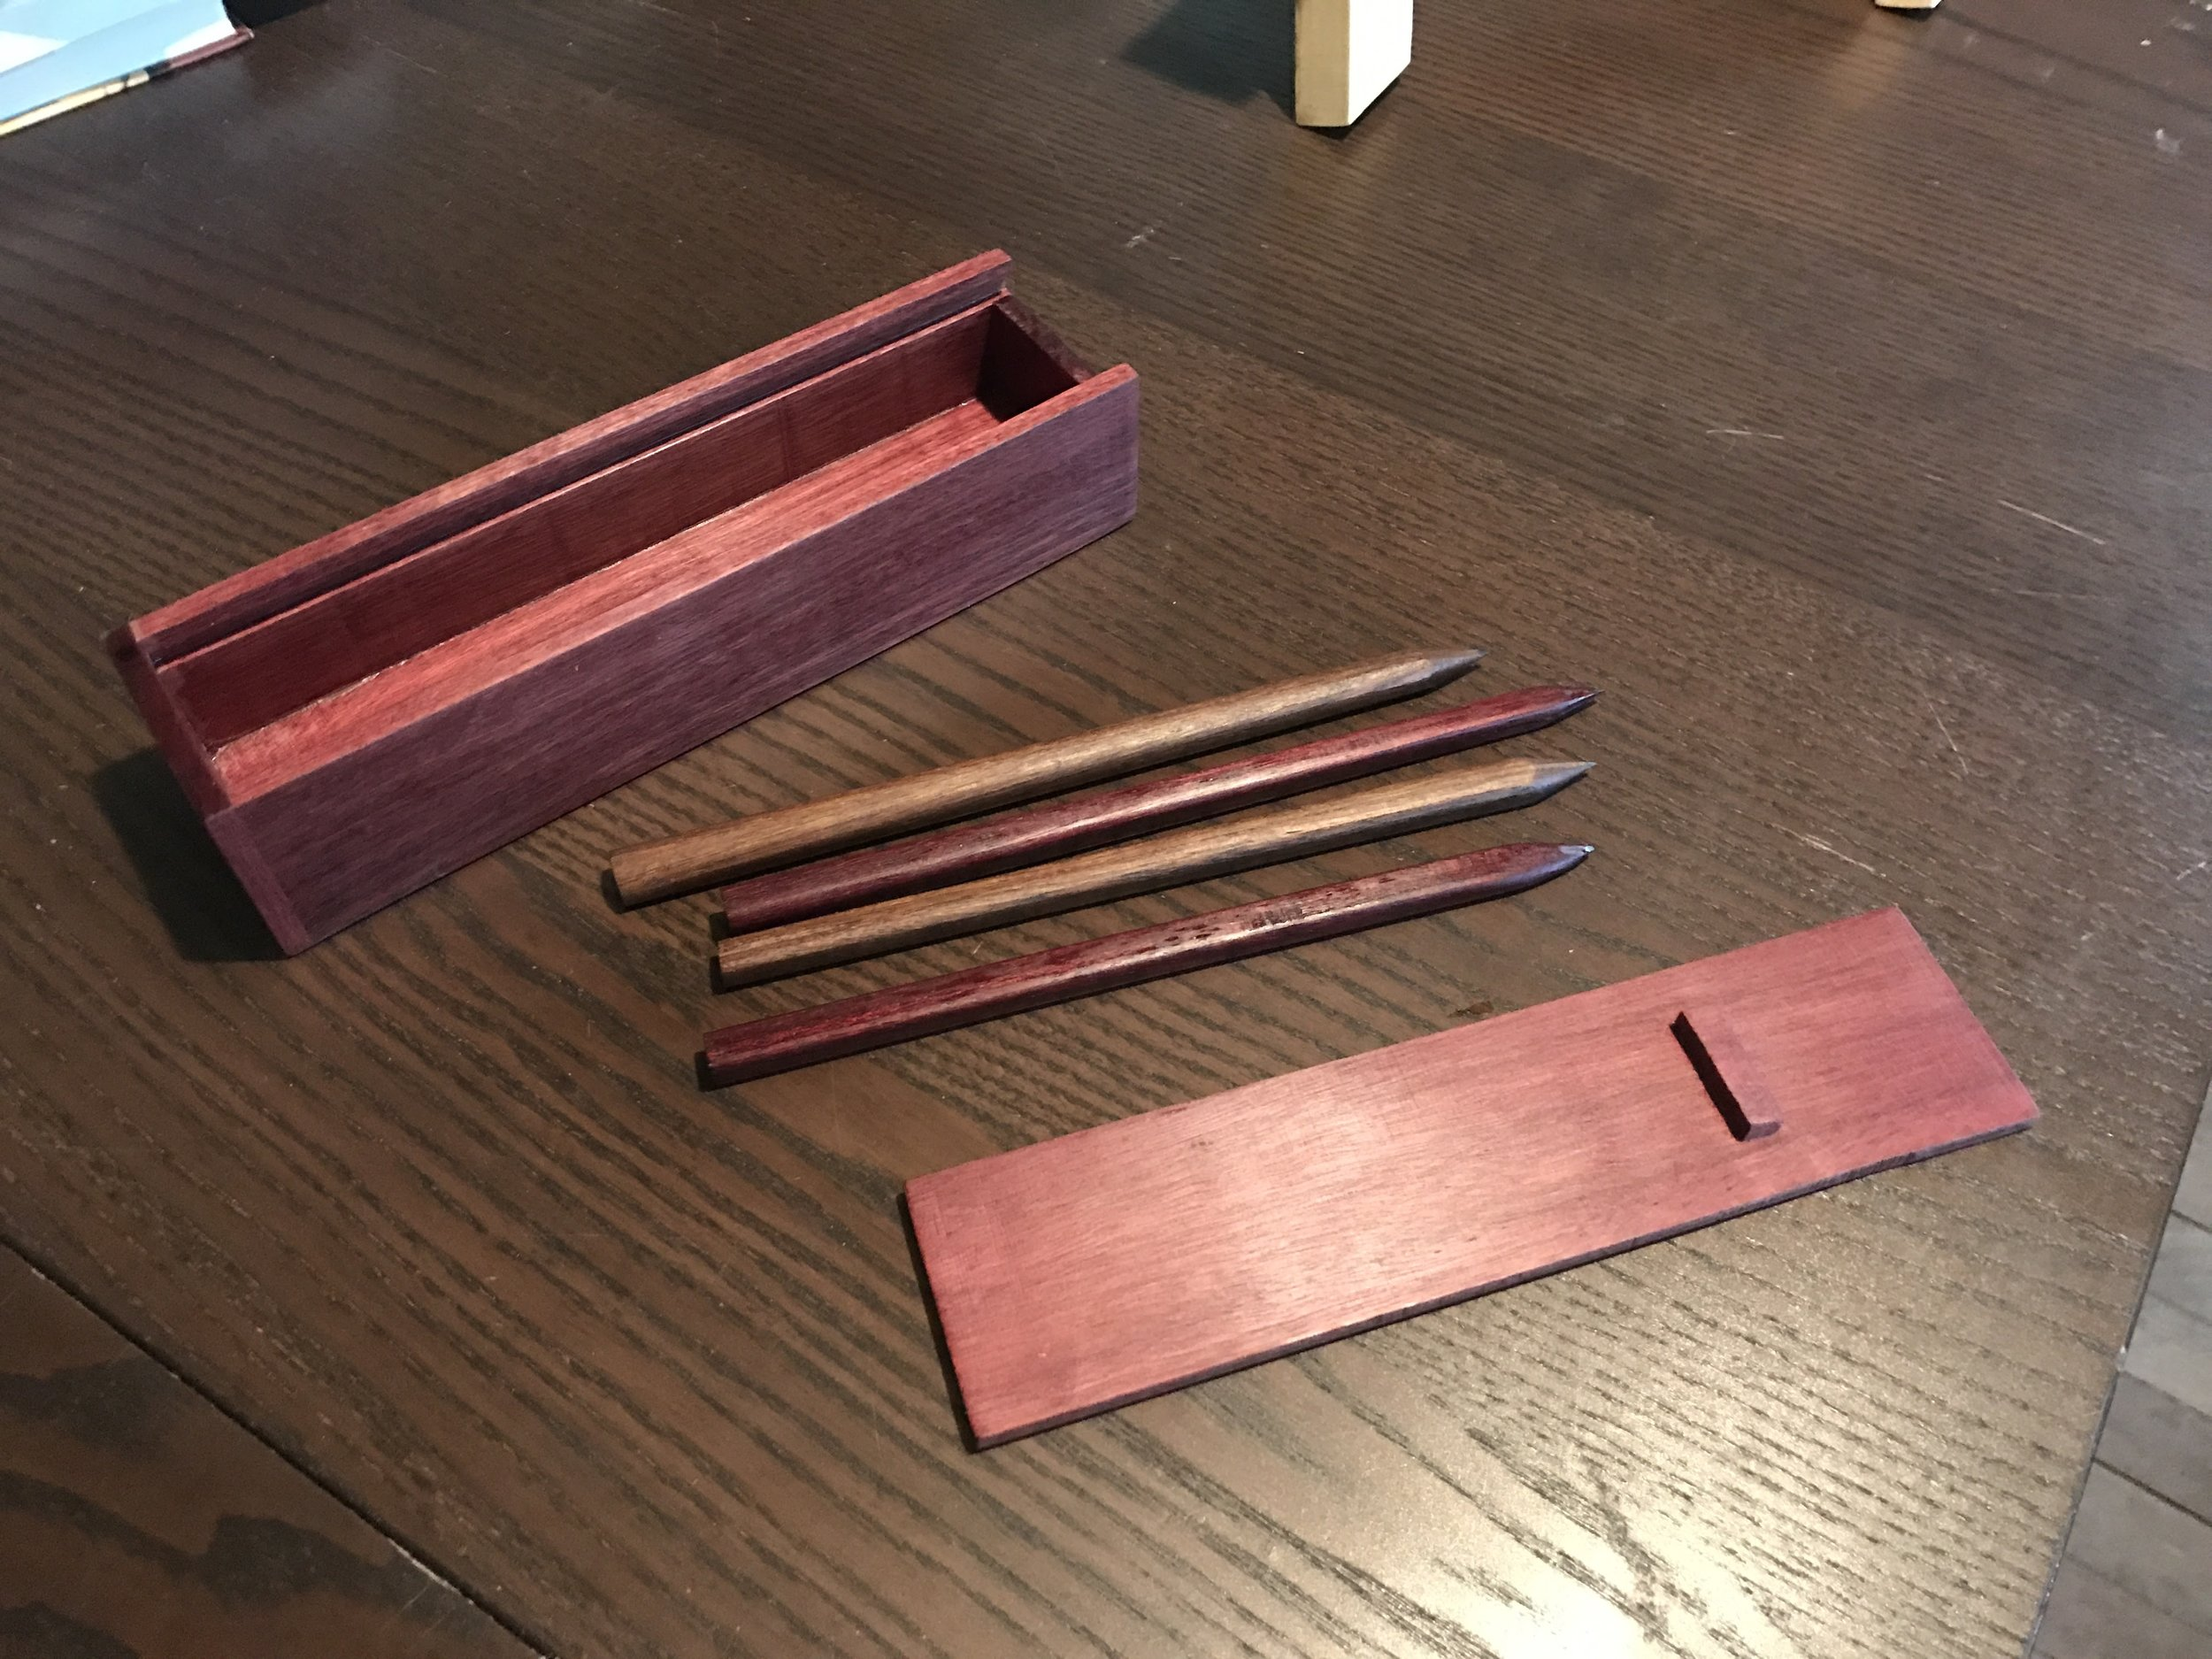 The hardwood pencils I made for my niece and for my girlfriends Christmas presents. They look pretty awesome but are super annoying to sharpen.